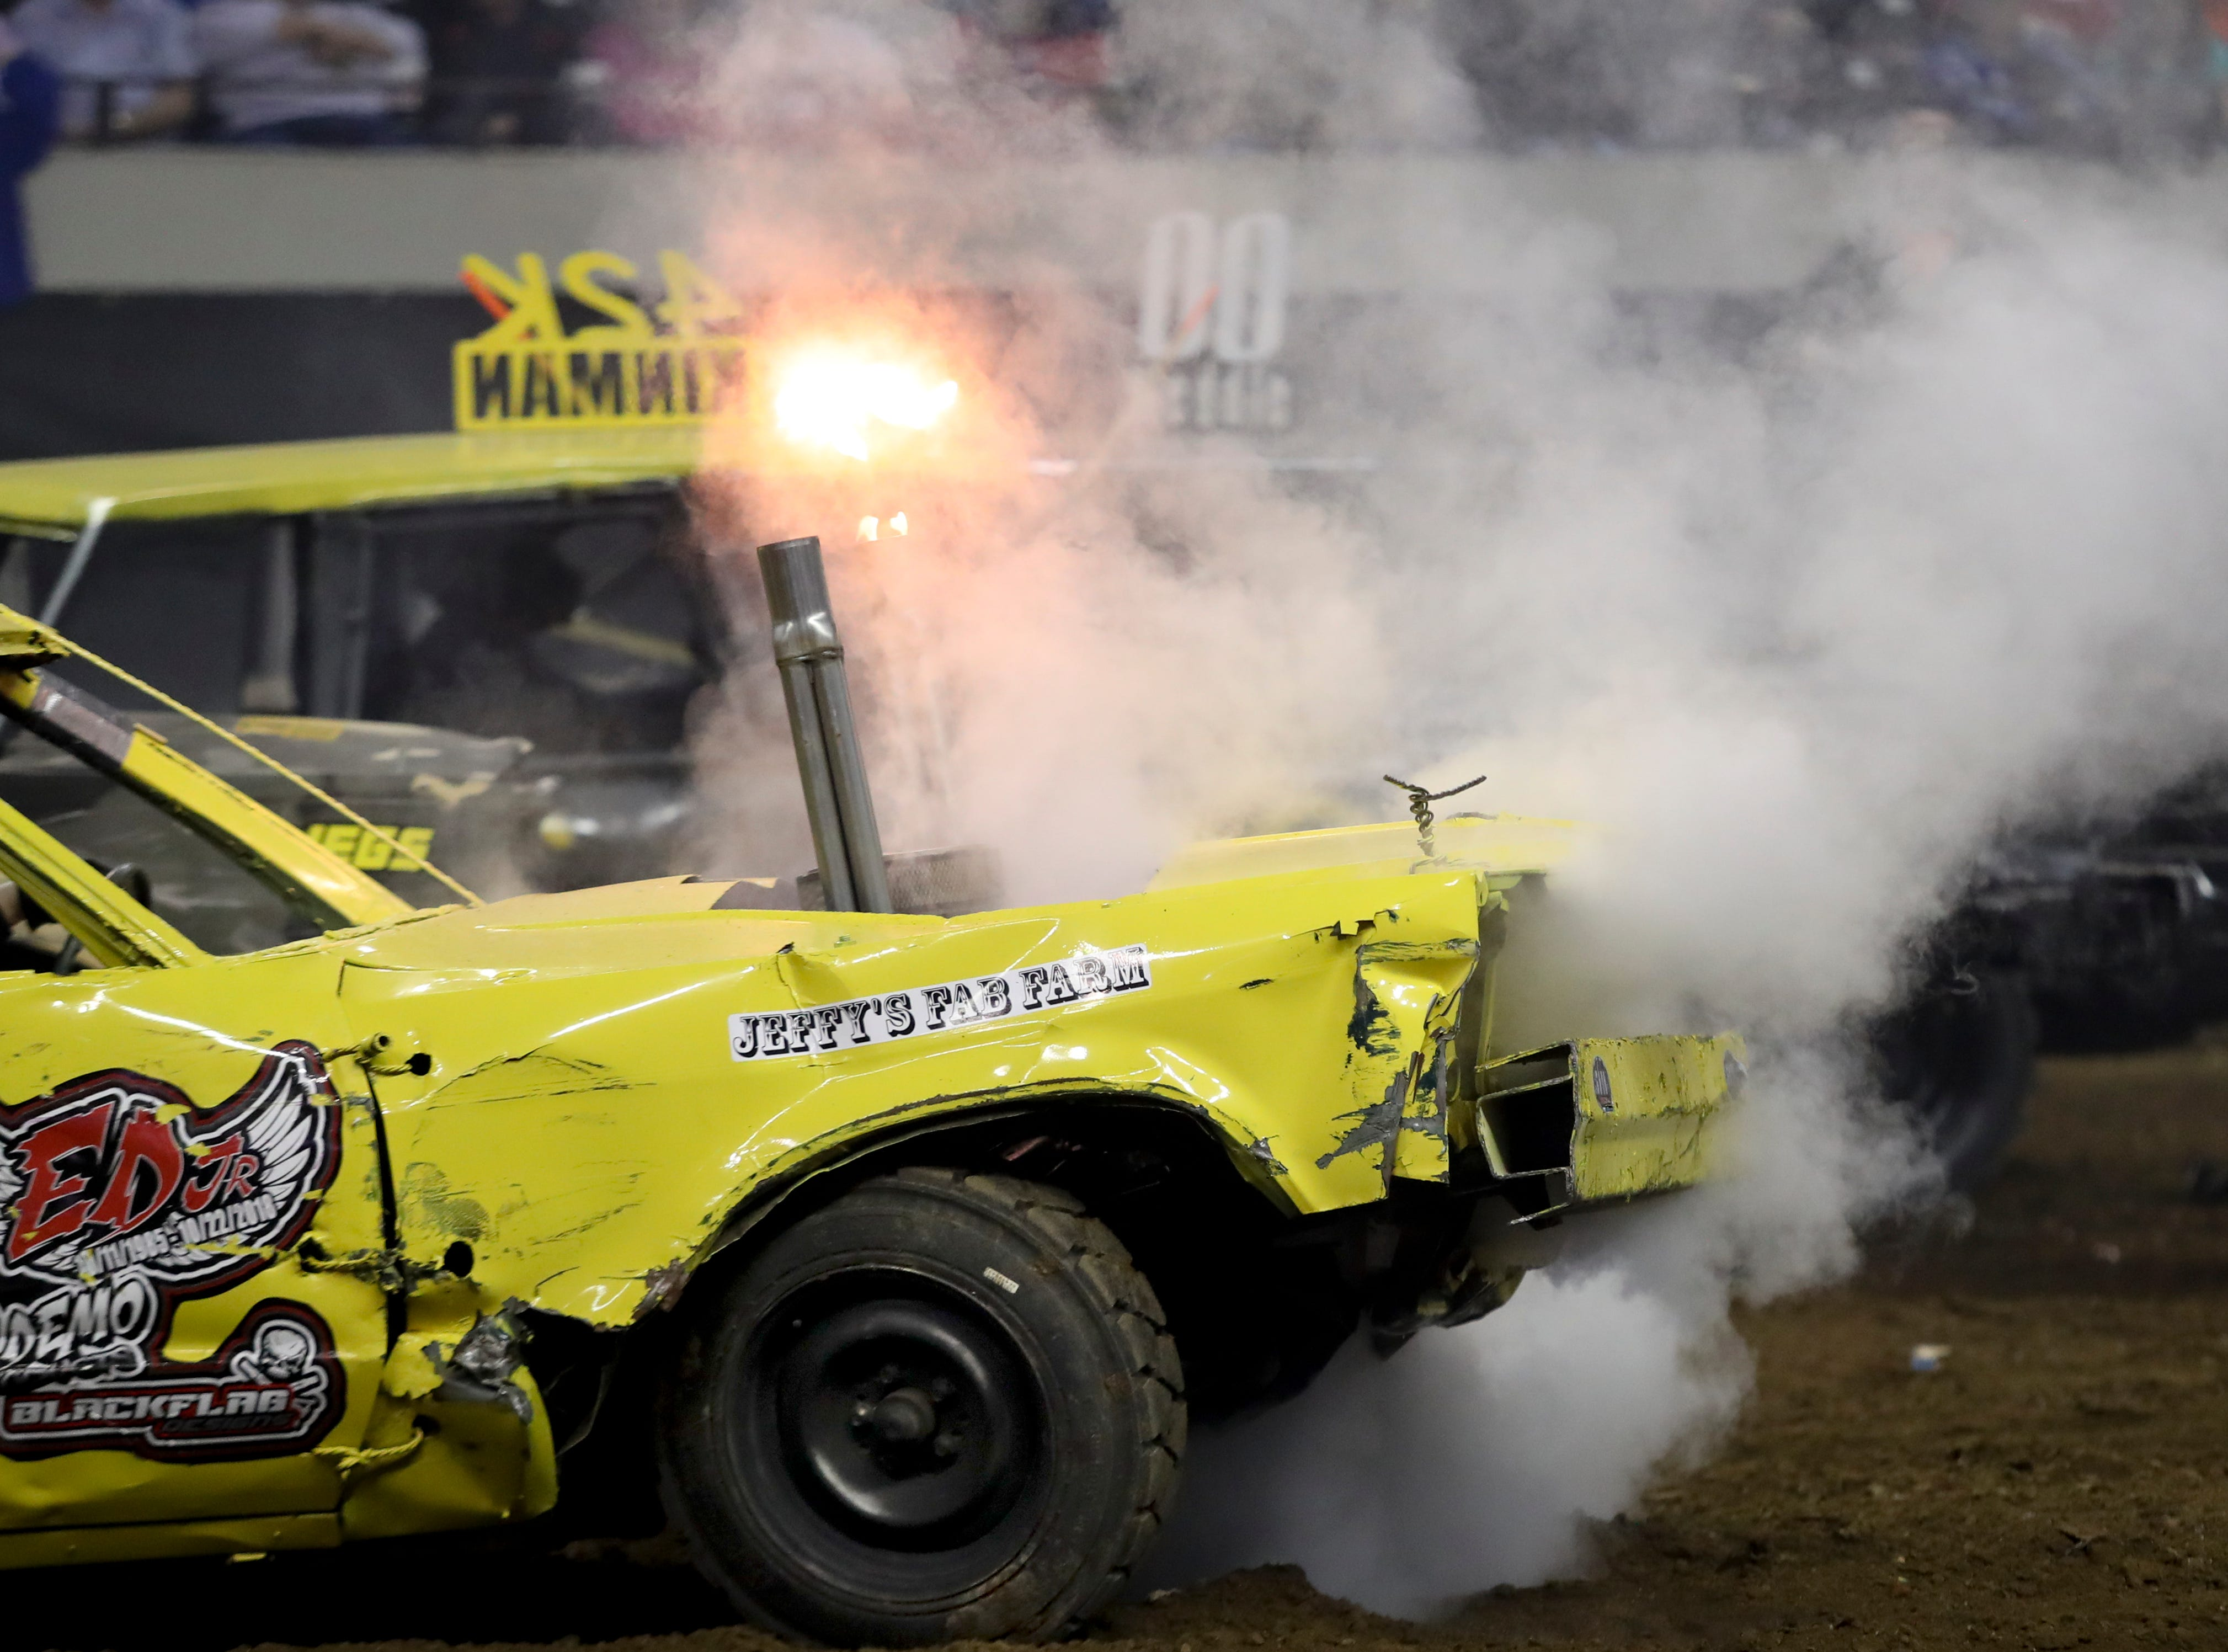 Smoking engines, metal crunching and dirt flying entertained the crowd at the 4th annual Bluegrass Bash Demolition Derby in Freedom Hall on March 23.